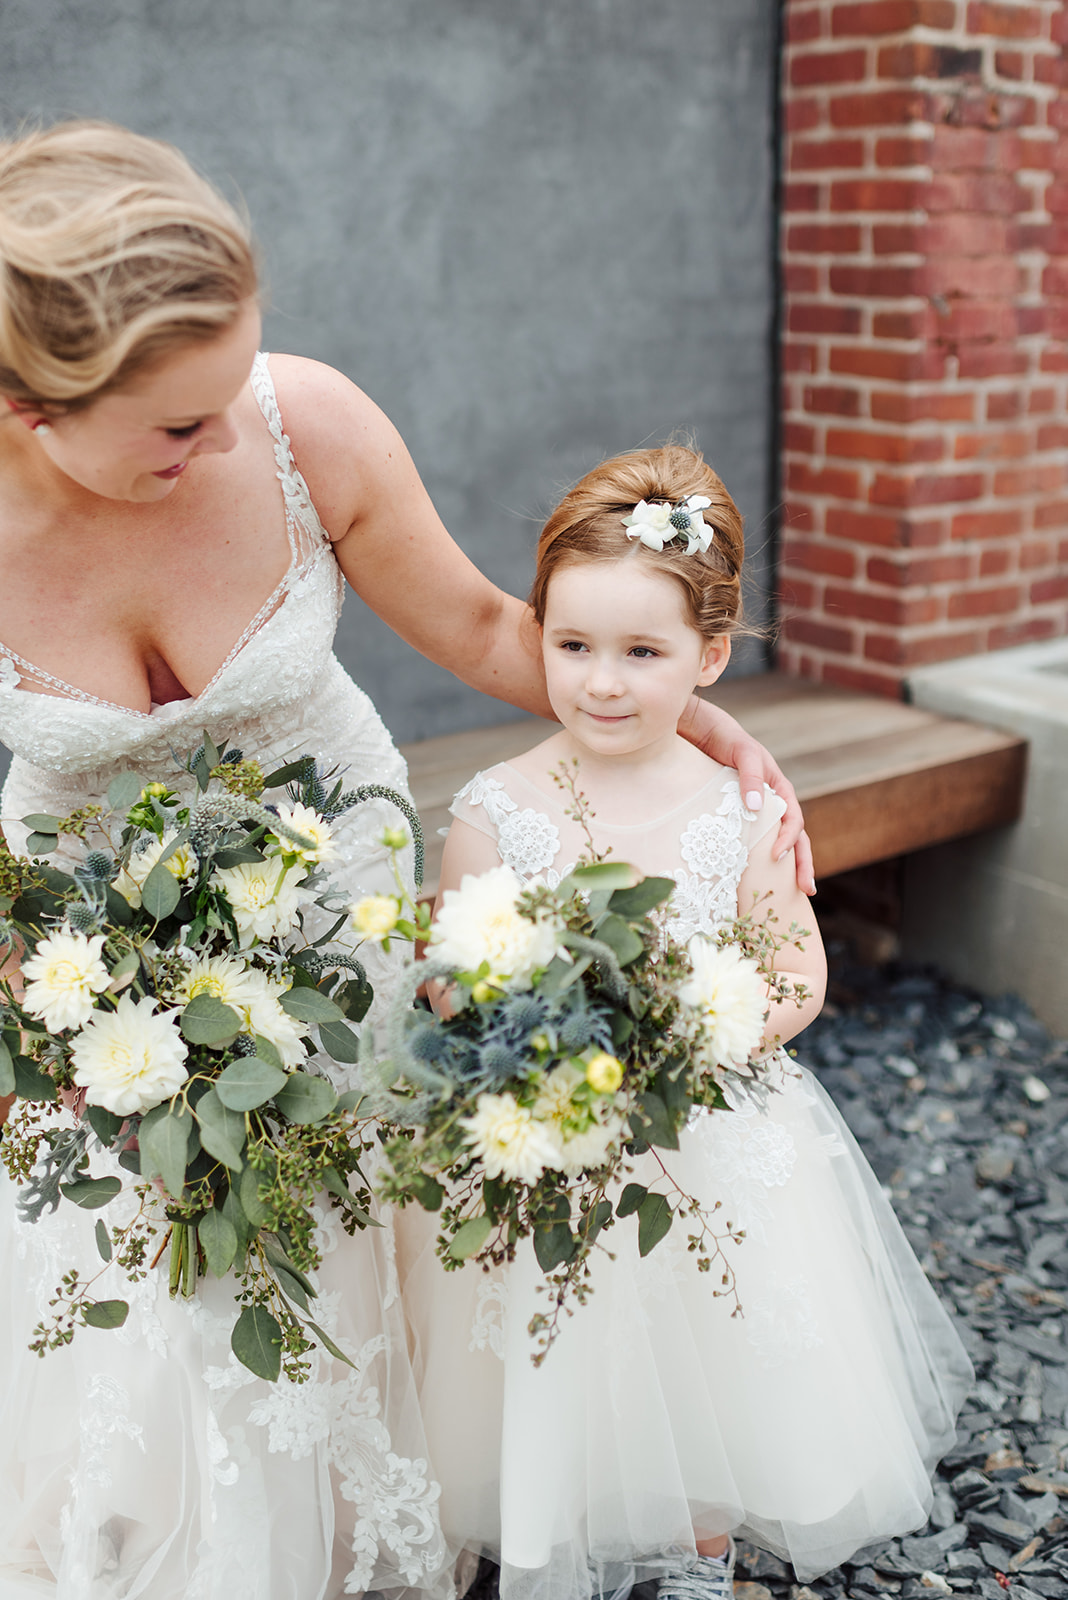 Flower girl and bride wedding photography: Nashville wedding at Clementine featured on Nashville Bride Guide